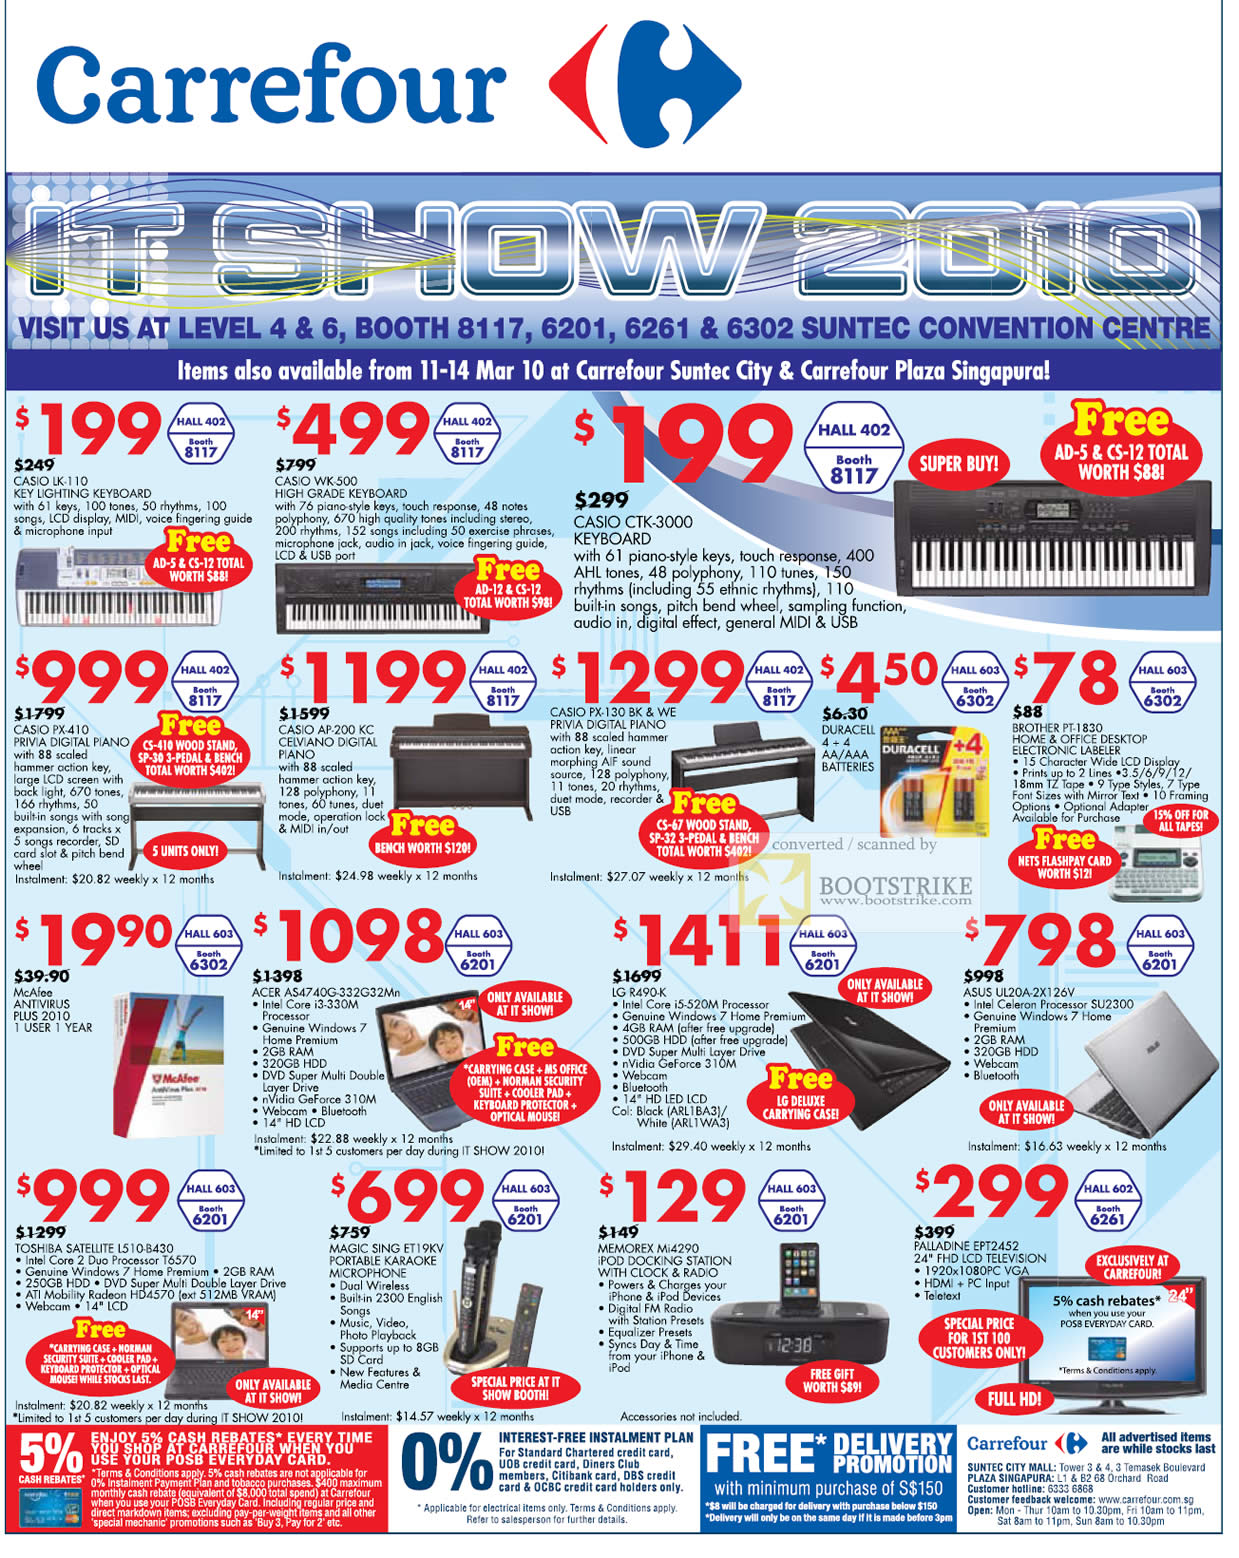 IT Show 2010 price list image brochure of Carrefour Casio Keyboard Digital Piano Labeler Notebooks Aeer LG ASUS Toshiba Palladine LCD TV